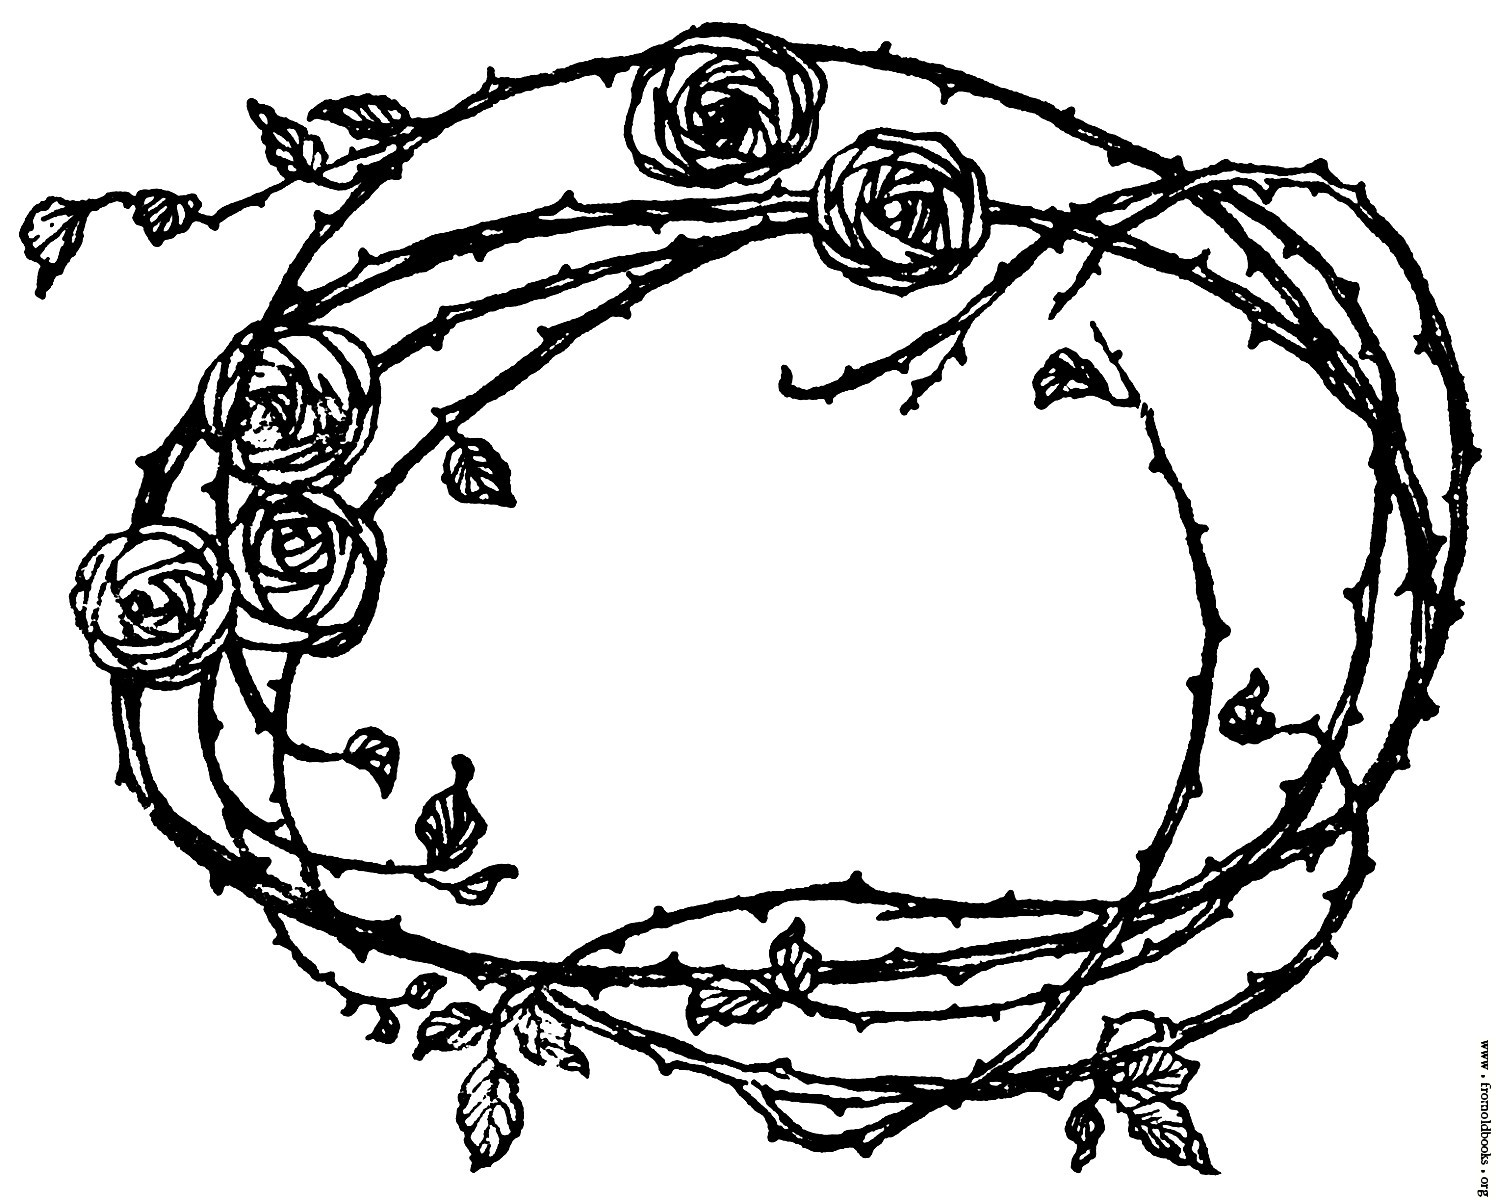 Rose Border Drawing at GetDrawings.com   Free for personal use Rose ...